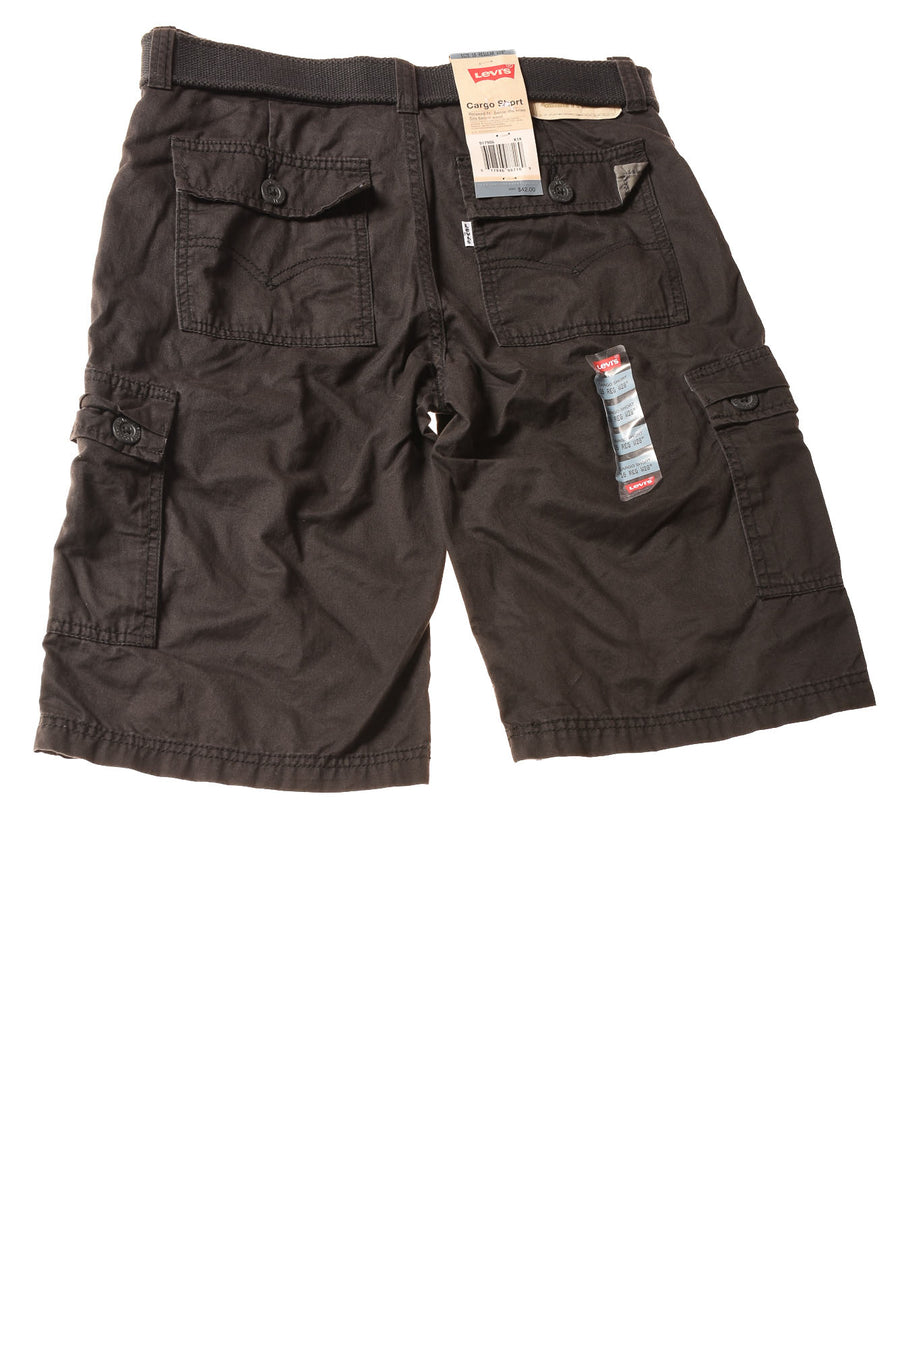 NEW Levi's Boy's Shorts 16 Charcoal